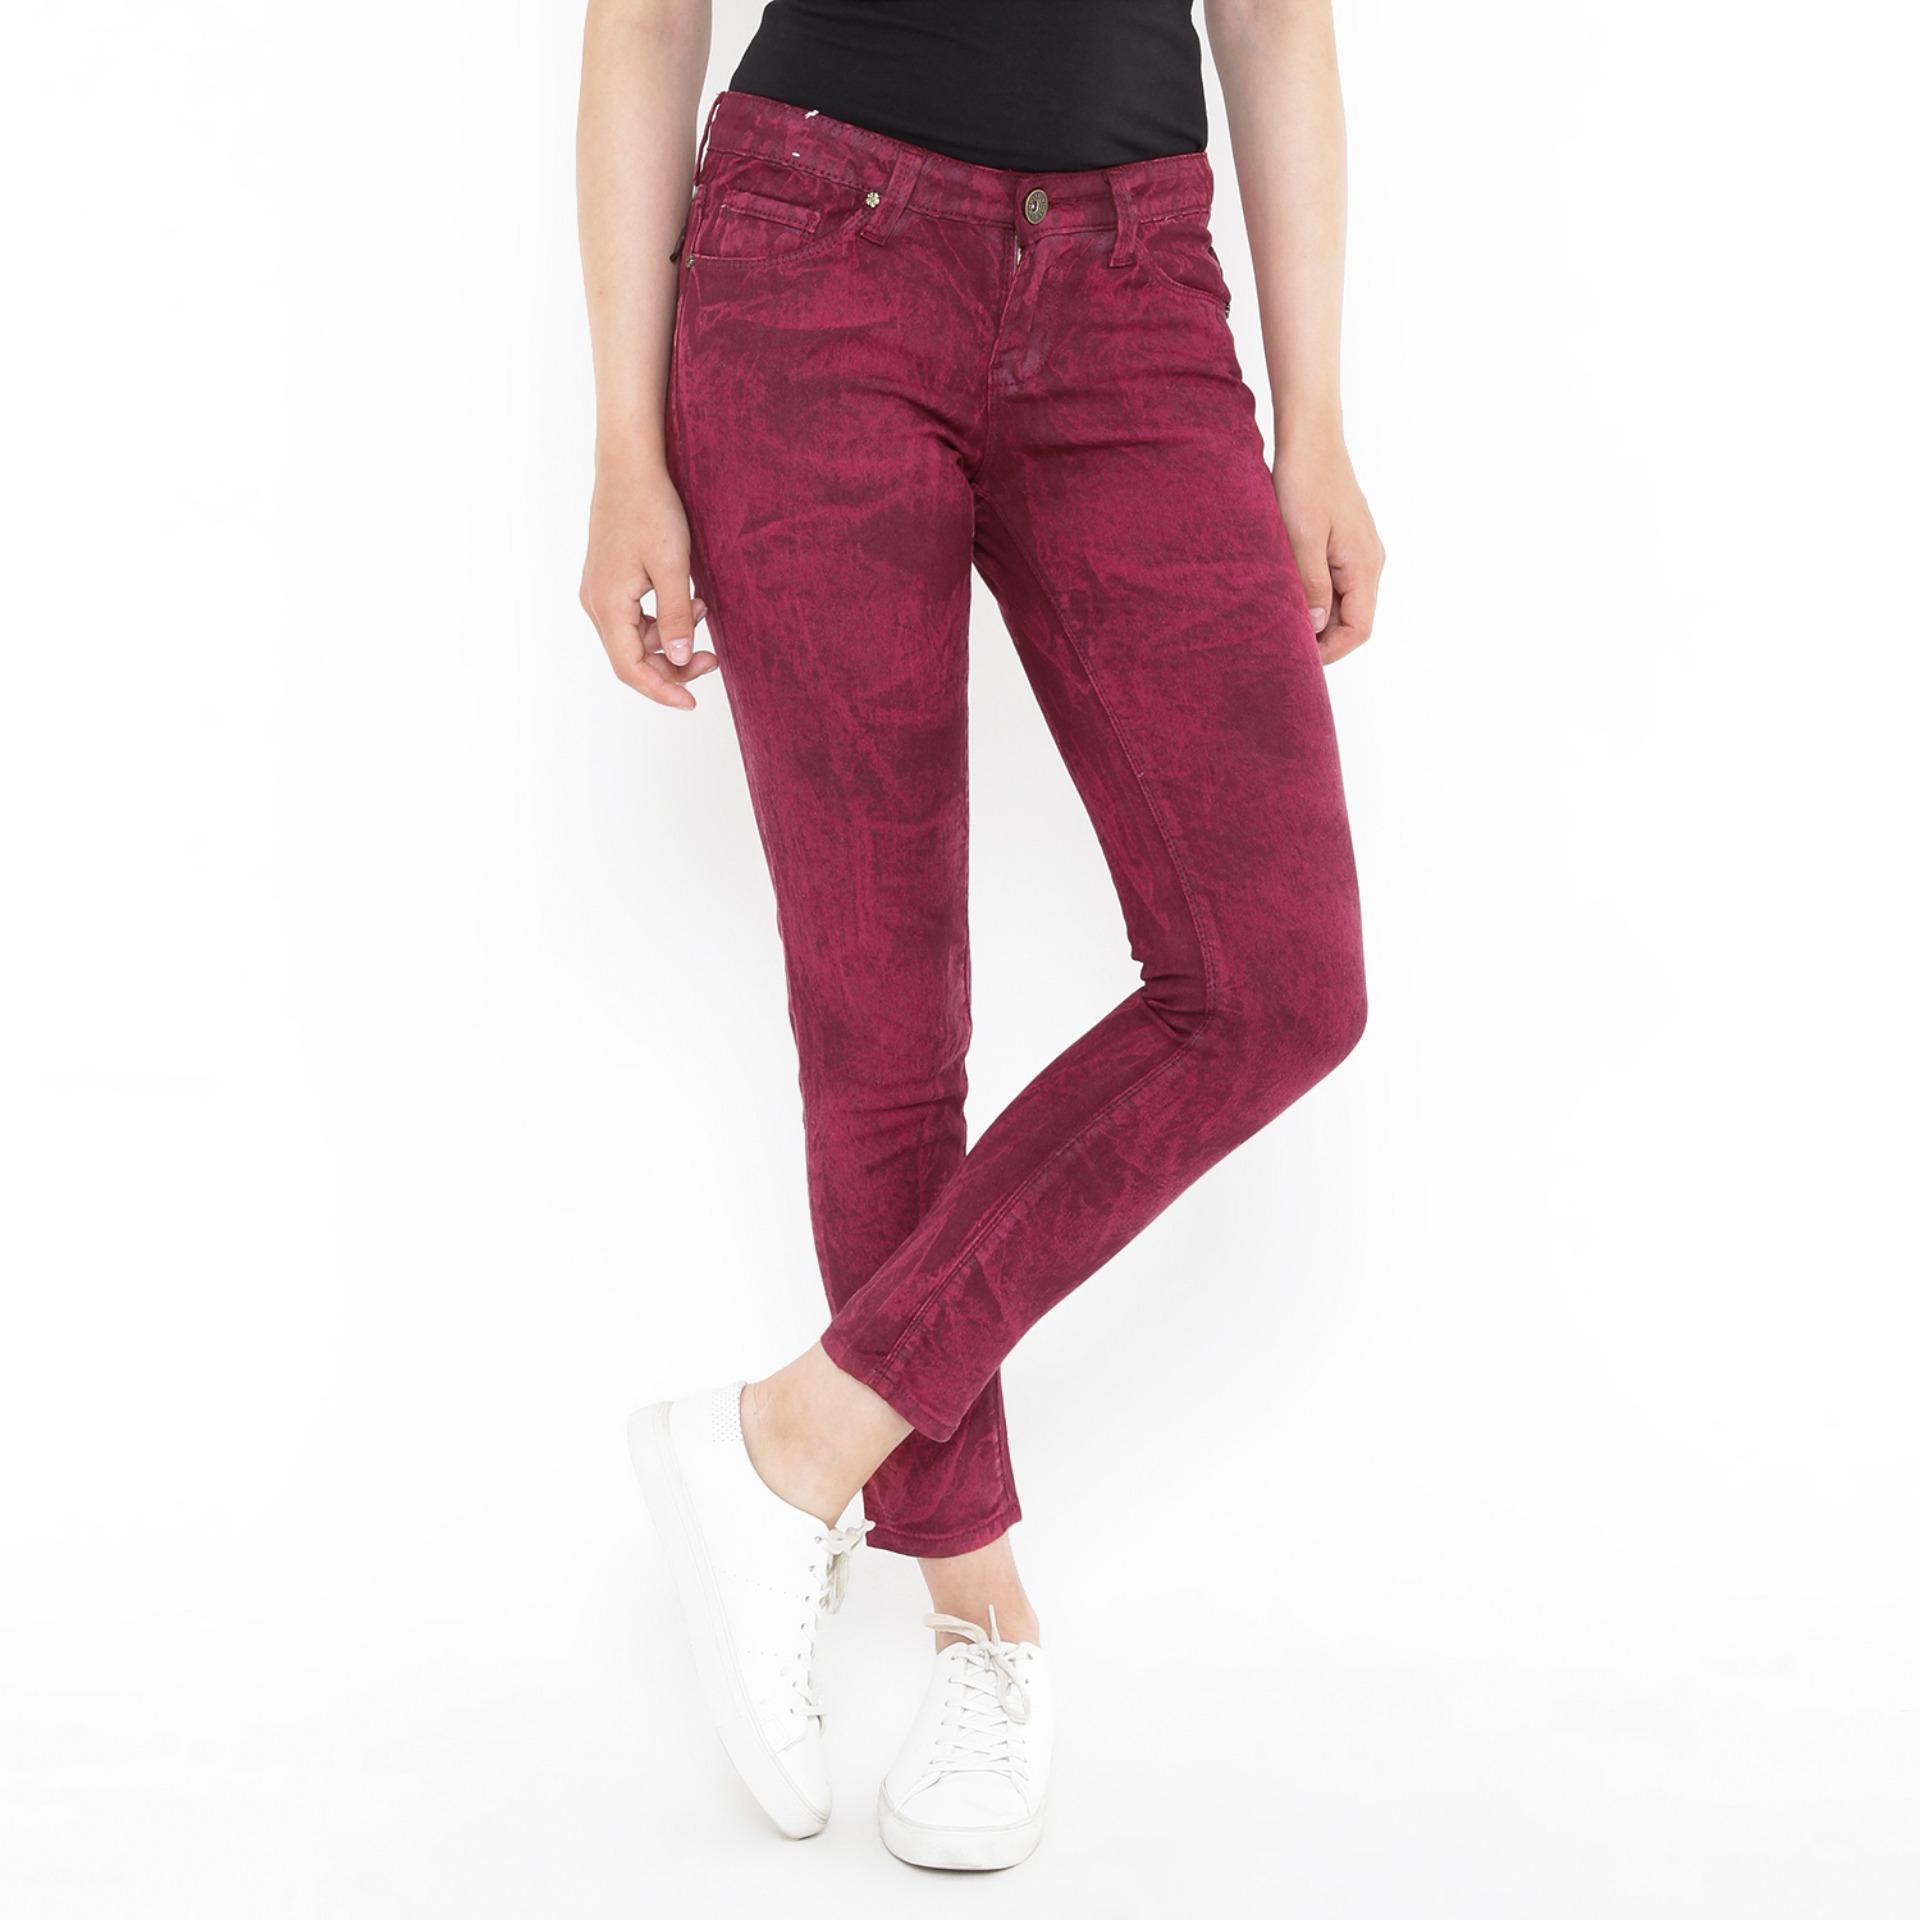 Jeans Slim Fit Motif Red Maroon Mobile Power Ladies C2859S Promo Beli 1 Gratis 1